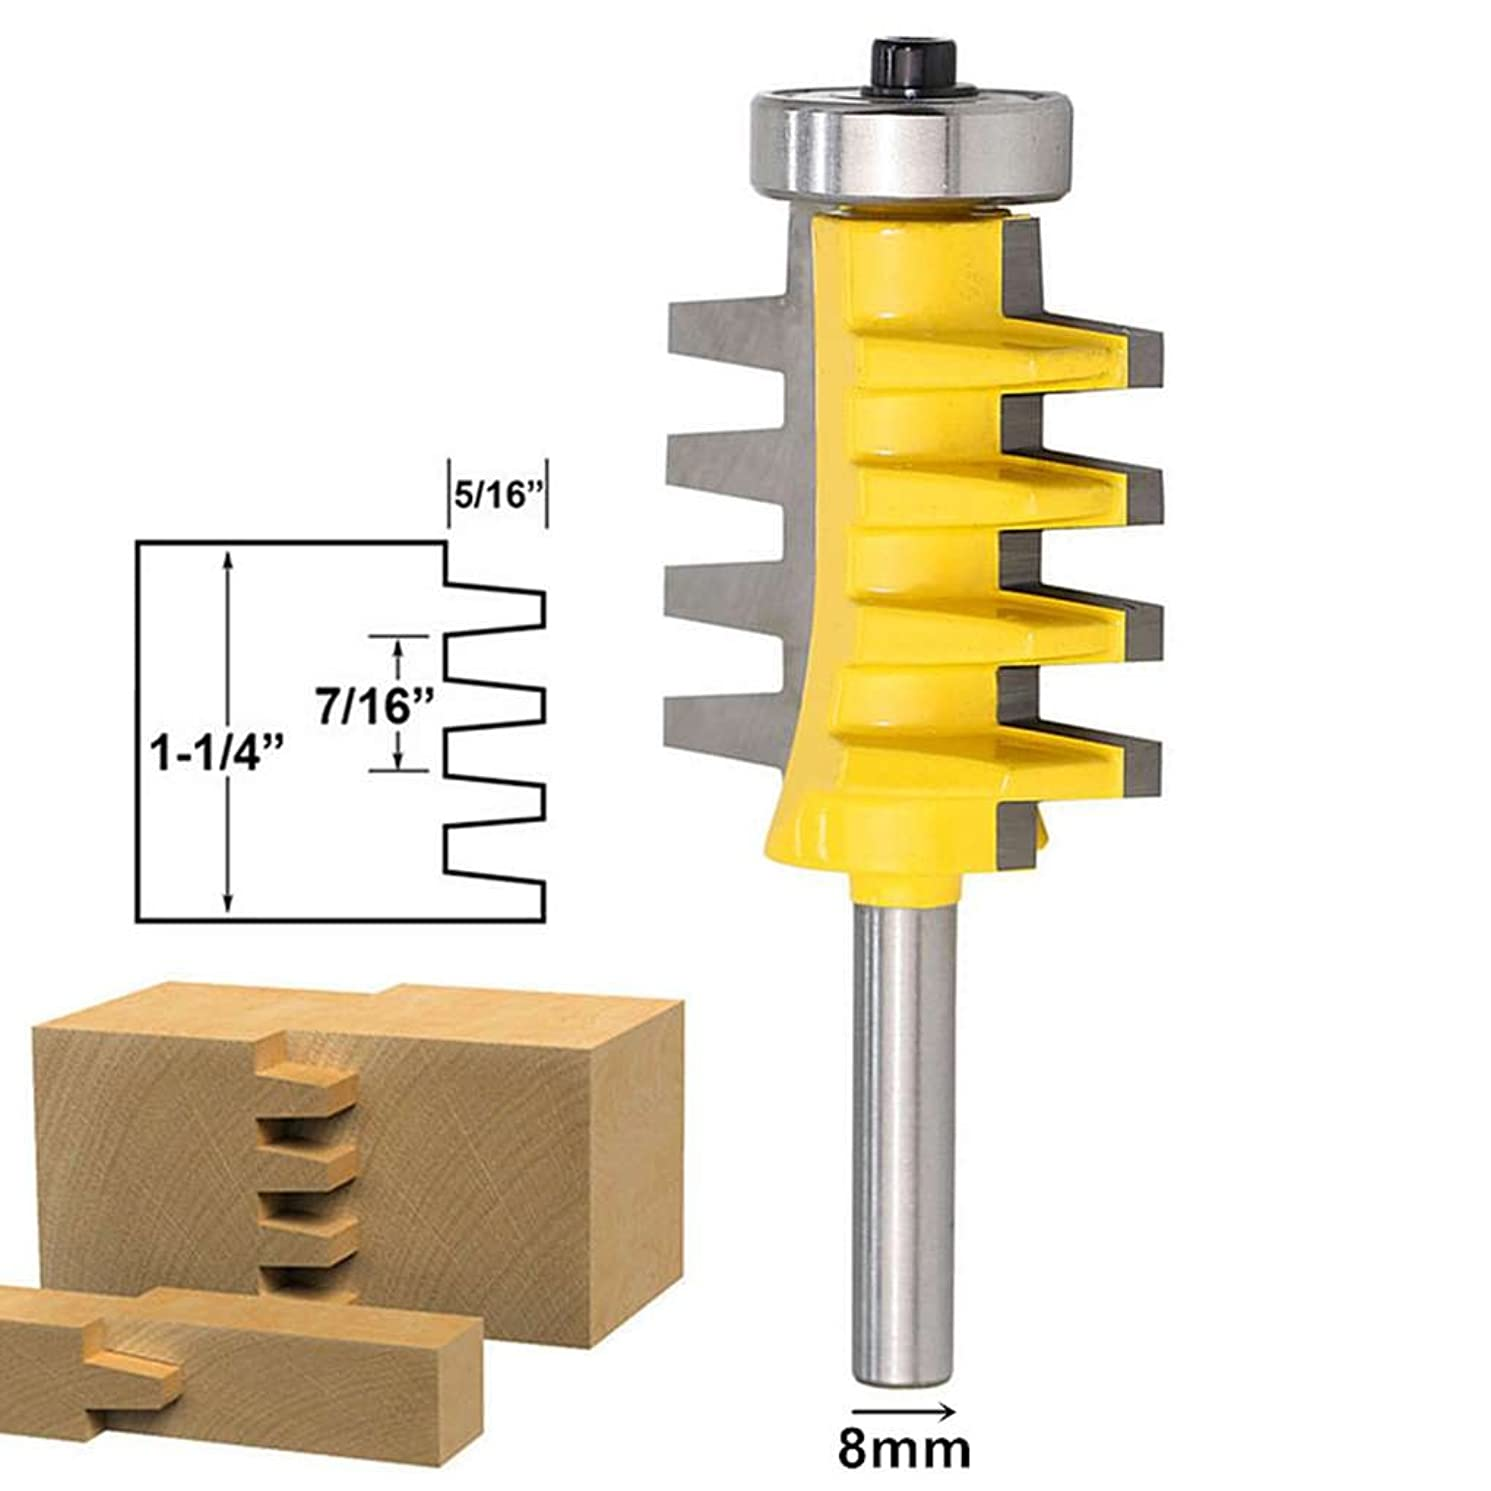 SZHR 8mm Shank Rail Reversible Finger Joint Glue Router Bit Cone Tenon Milling Cutters for Carpenter Woodworking Tools